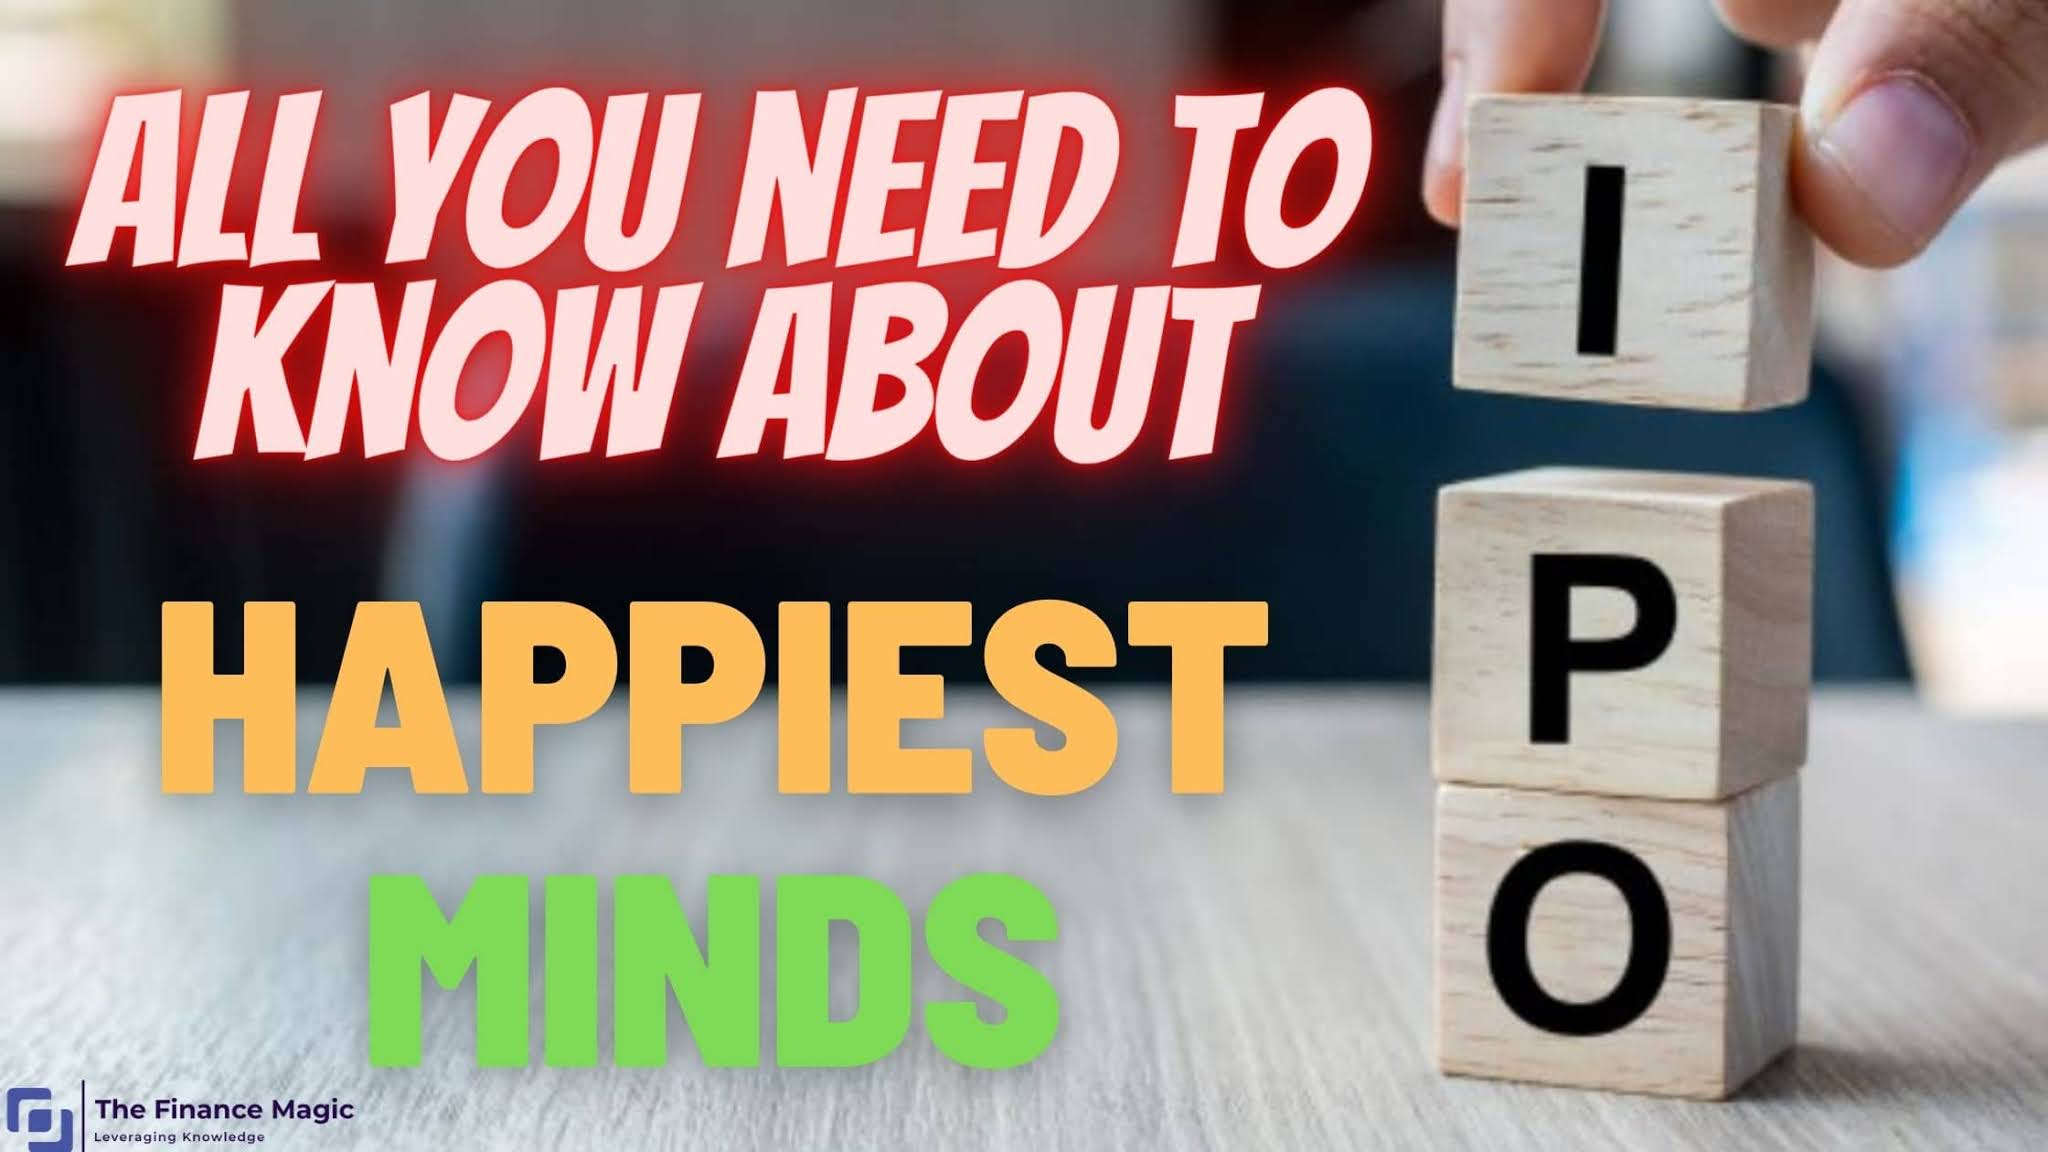 Happiest Minds - Company analysis